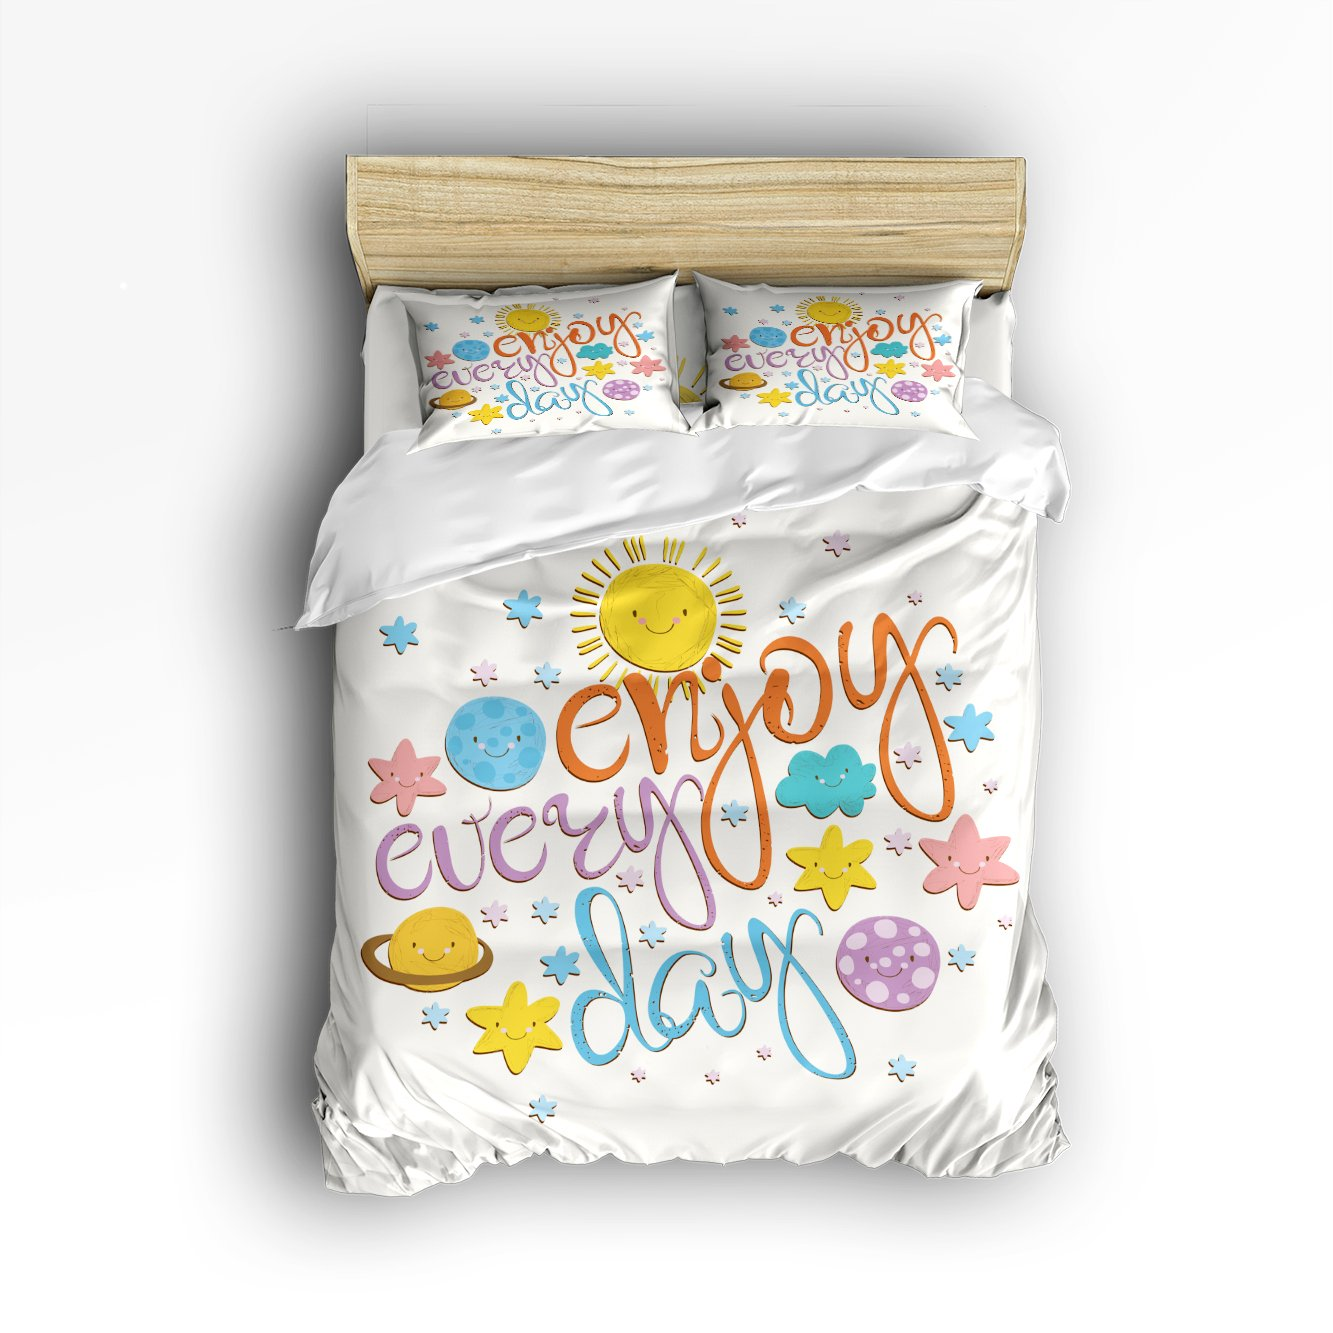 Libaoge 4 Piece Bed Sheets Set, Enjoy Every Day Colorful Script Sunshine Print, 1 Flat Sheet 1 Duvet Cover and 2 Pillow Cases by Libaoge